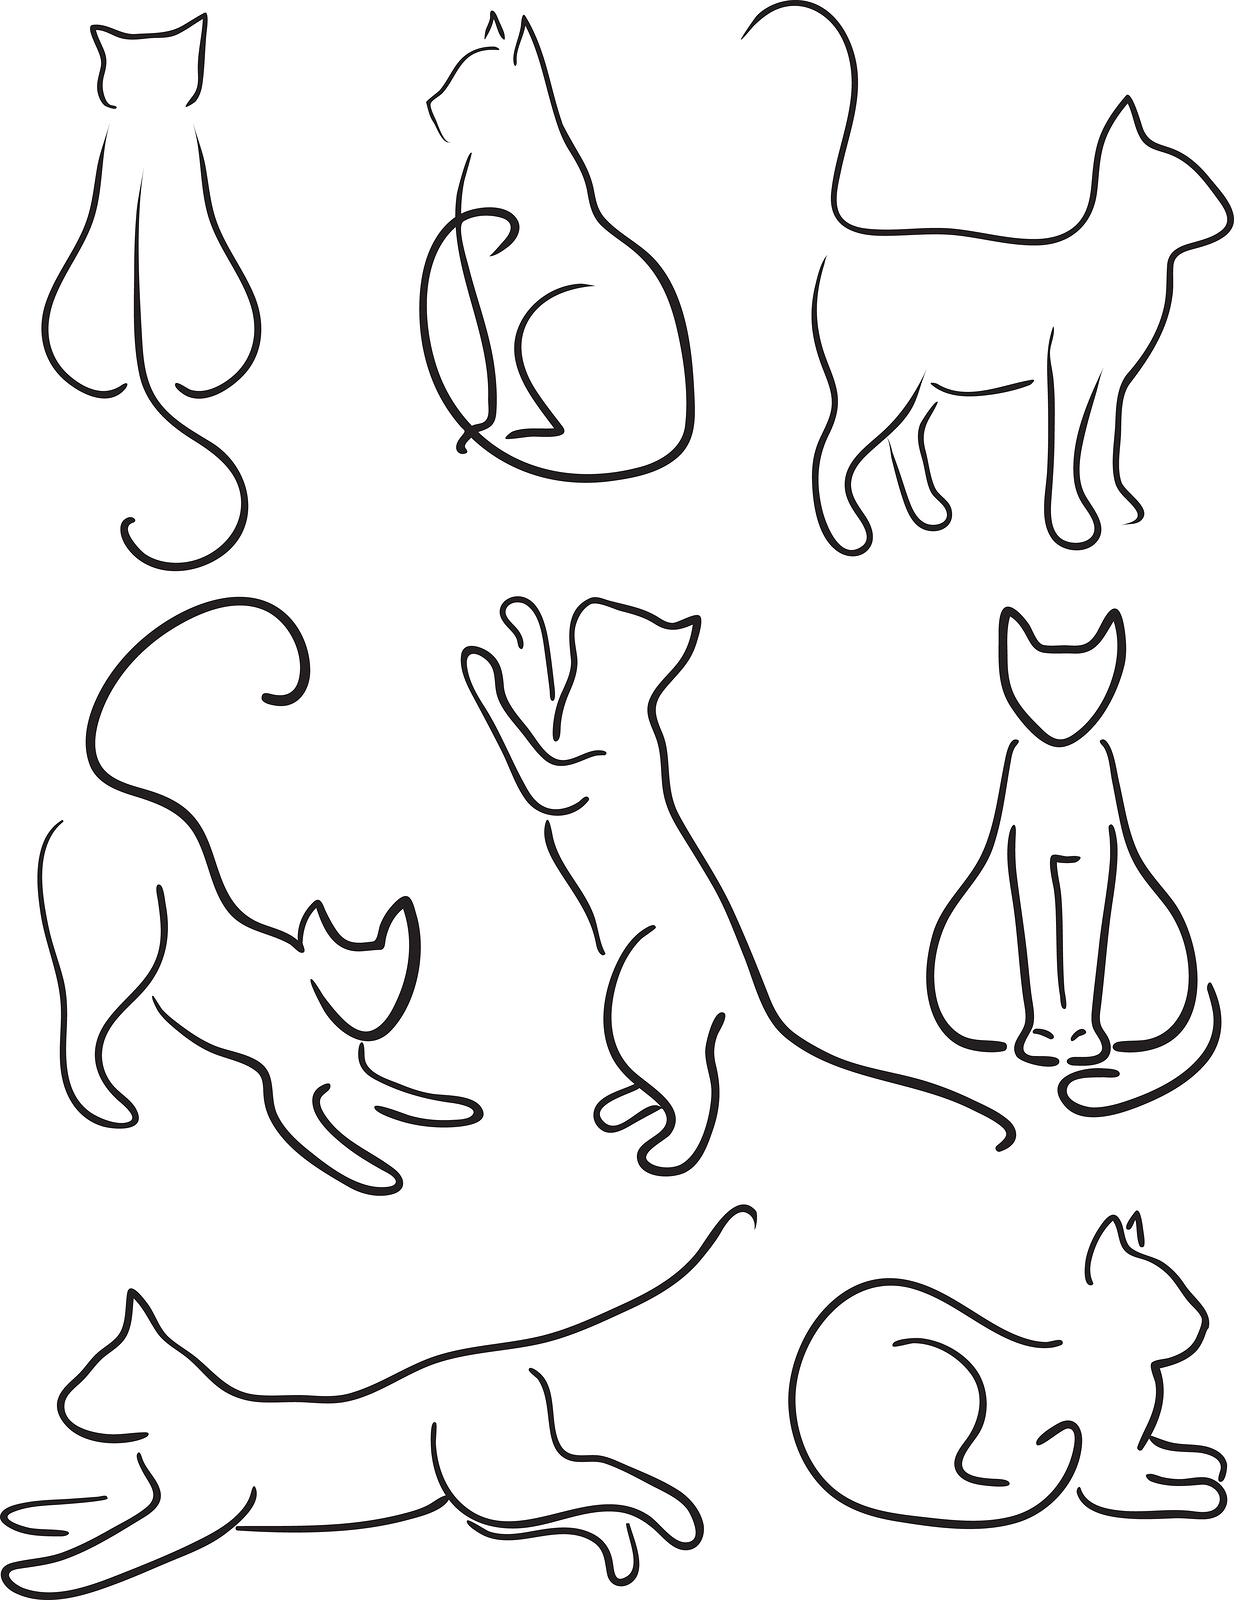 Line Art Cat : Levy innovation positioning for consultants and other